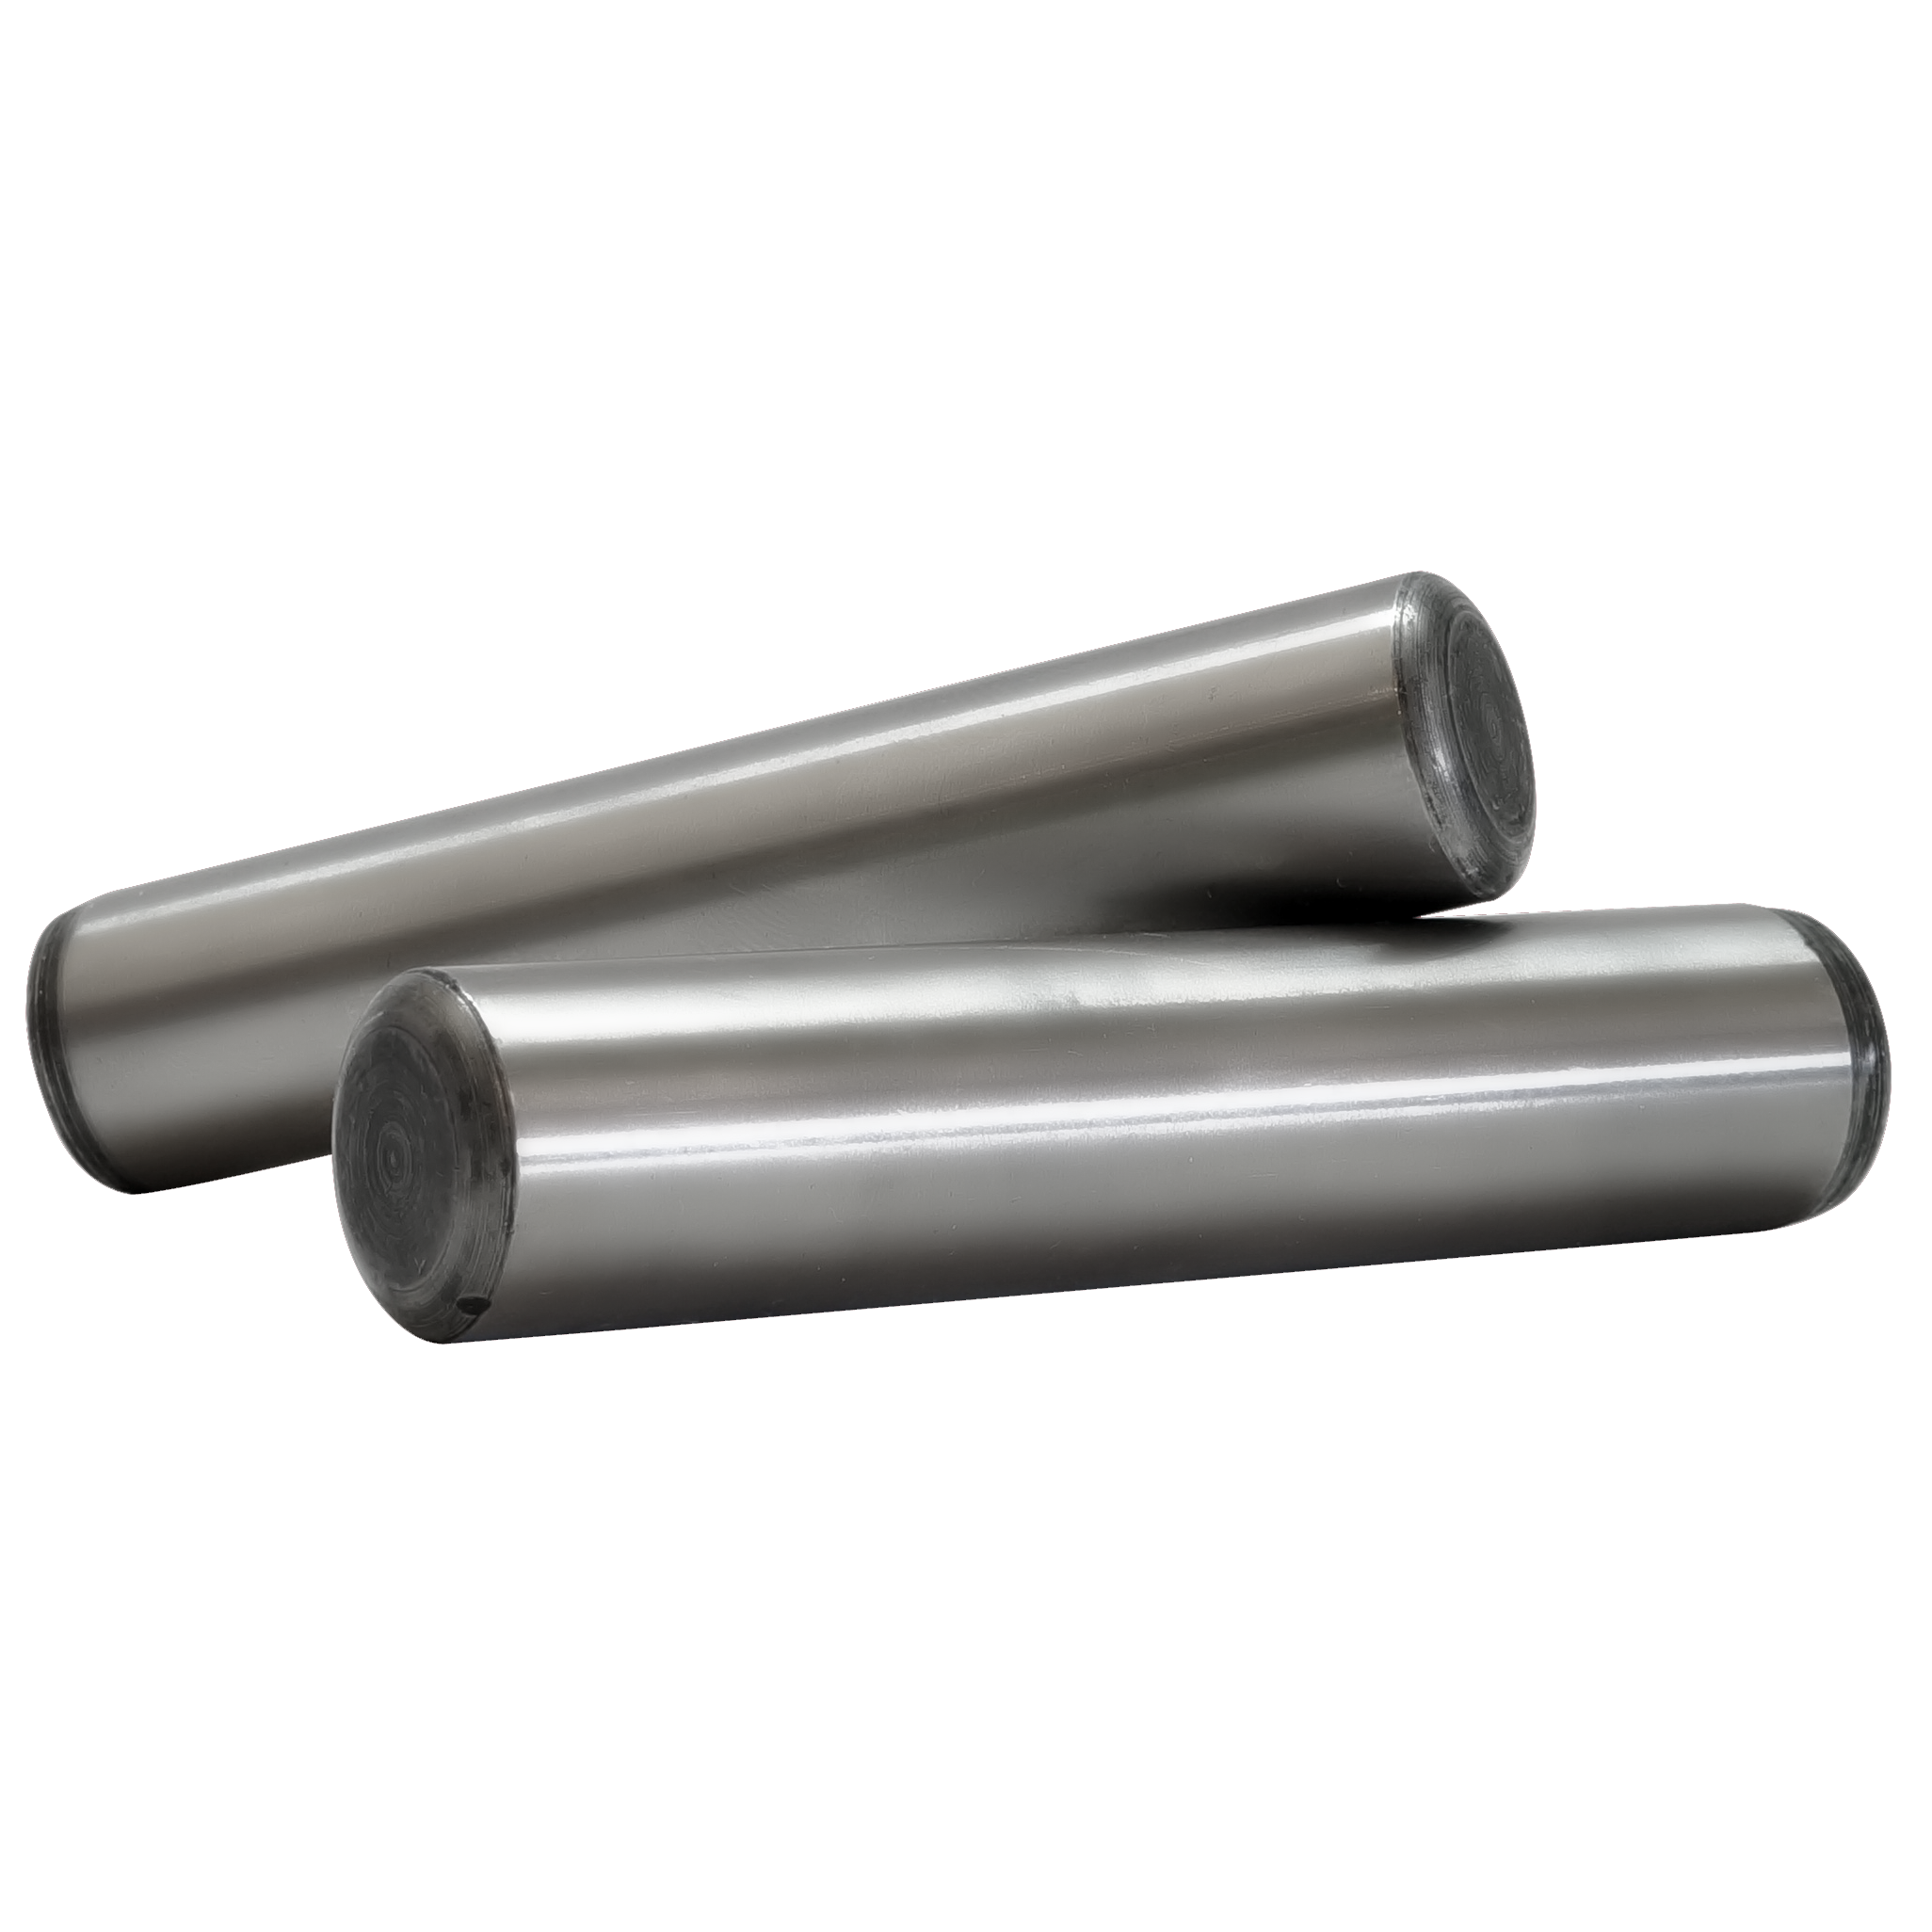 "3/4x3 1/2 ASME B18.8.2 Alloy Steel Dowel Pin Hardened Ground 0.0002"" Over Sized (Unbrako)"